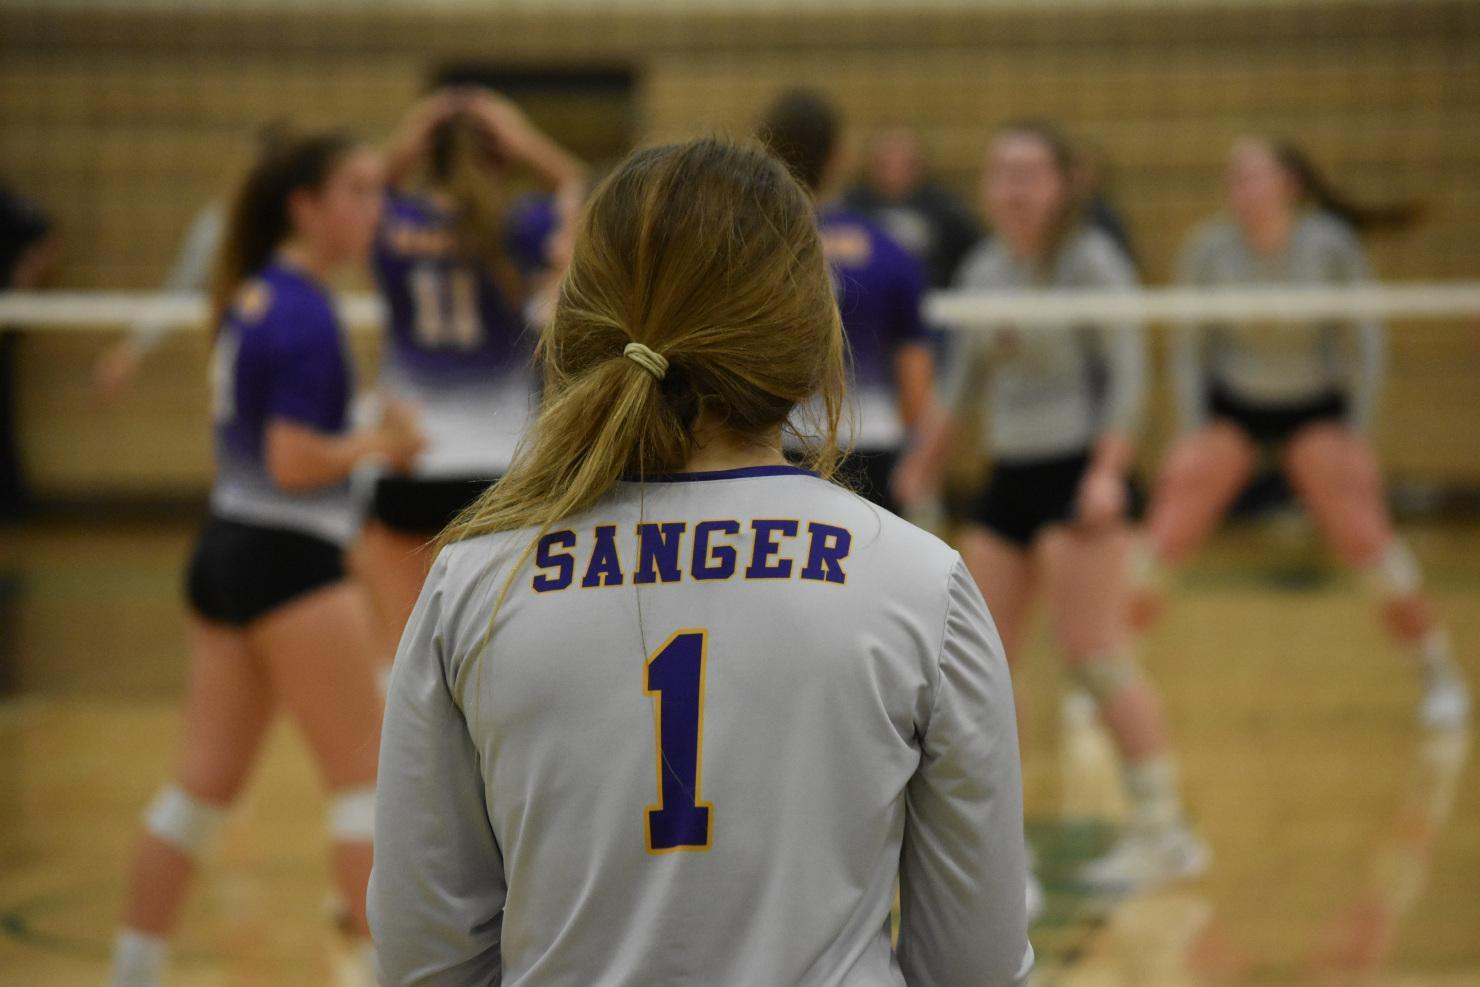 Sanger Volleyball Players